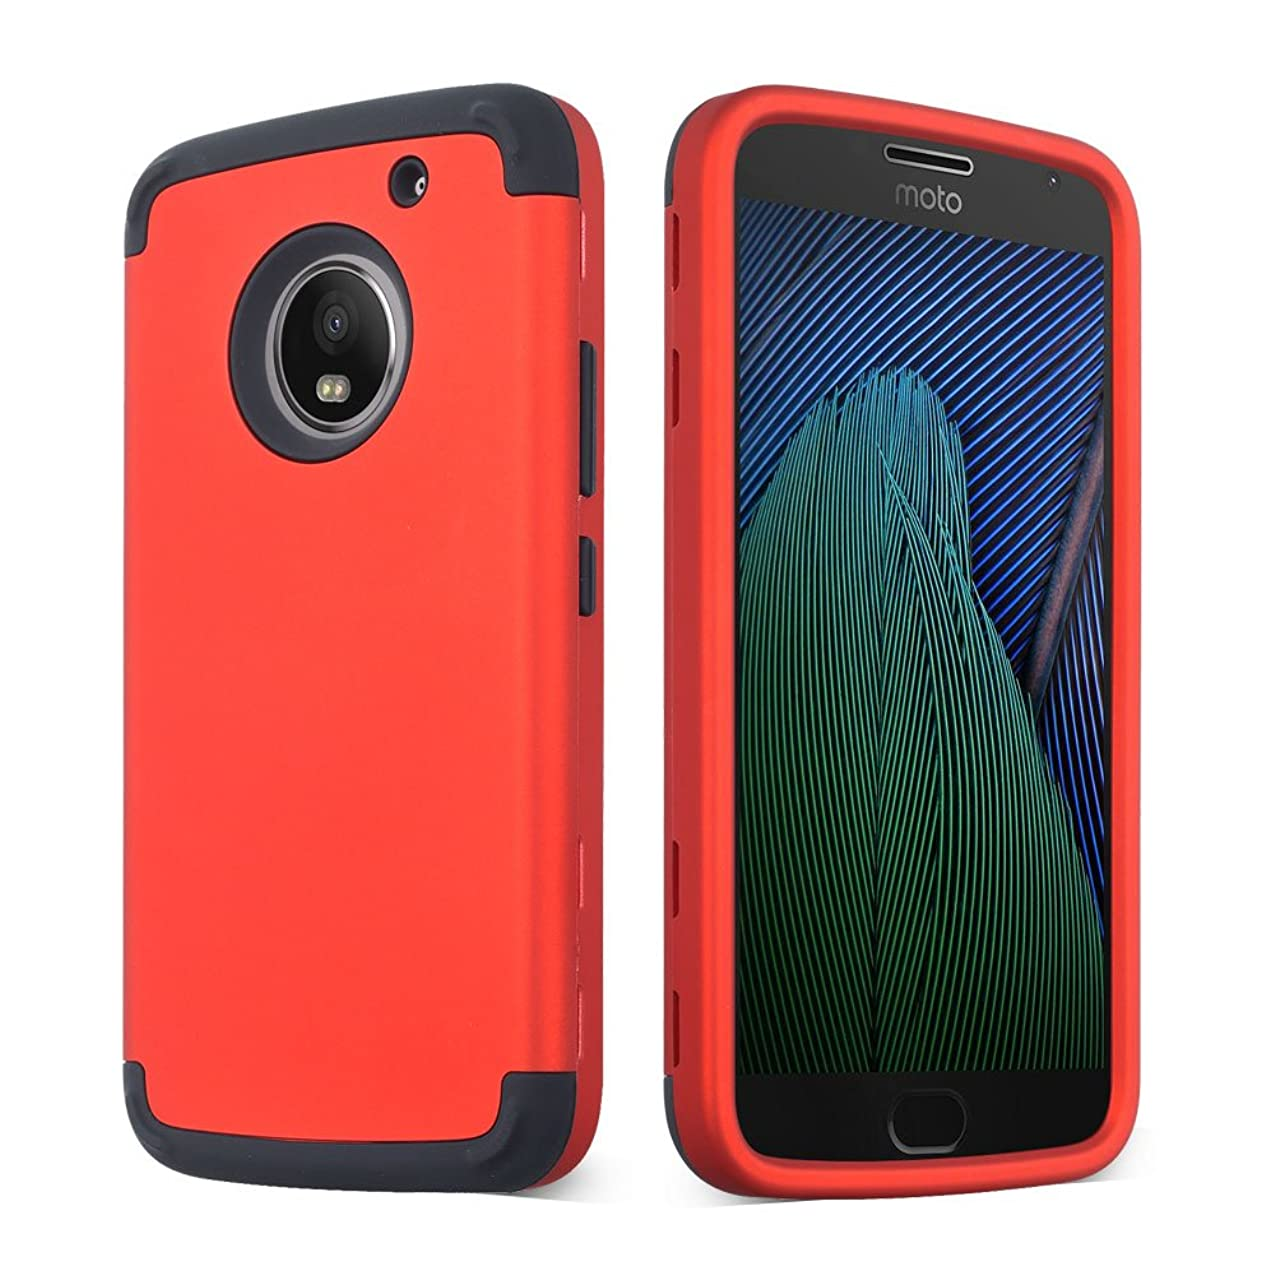 SOUNDMAE LG Aristo Case, LG K8 2017 Case, Heavy Duty PC and TPU Combo Protective Defender Body 3 In 1 Design Armor Shock Absorbing Slim Fit Cover Bumper for LG Fortune/MS210/Phoenix 3 - Red yiakkrtdczmxo771